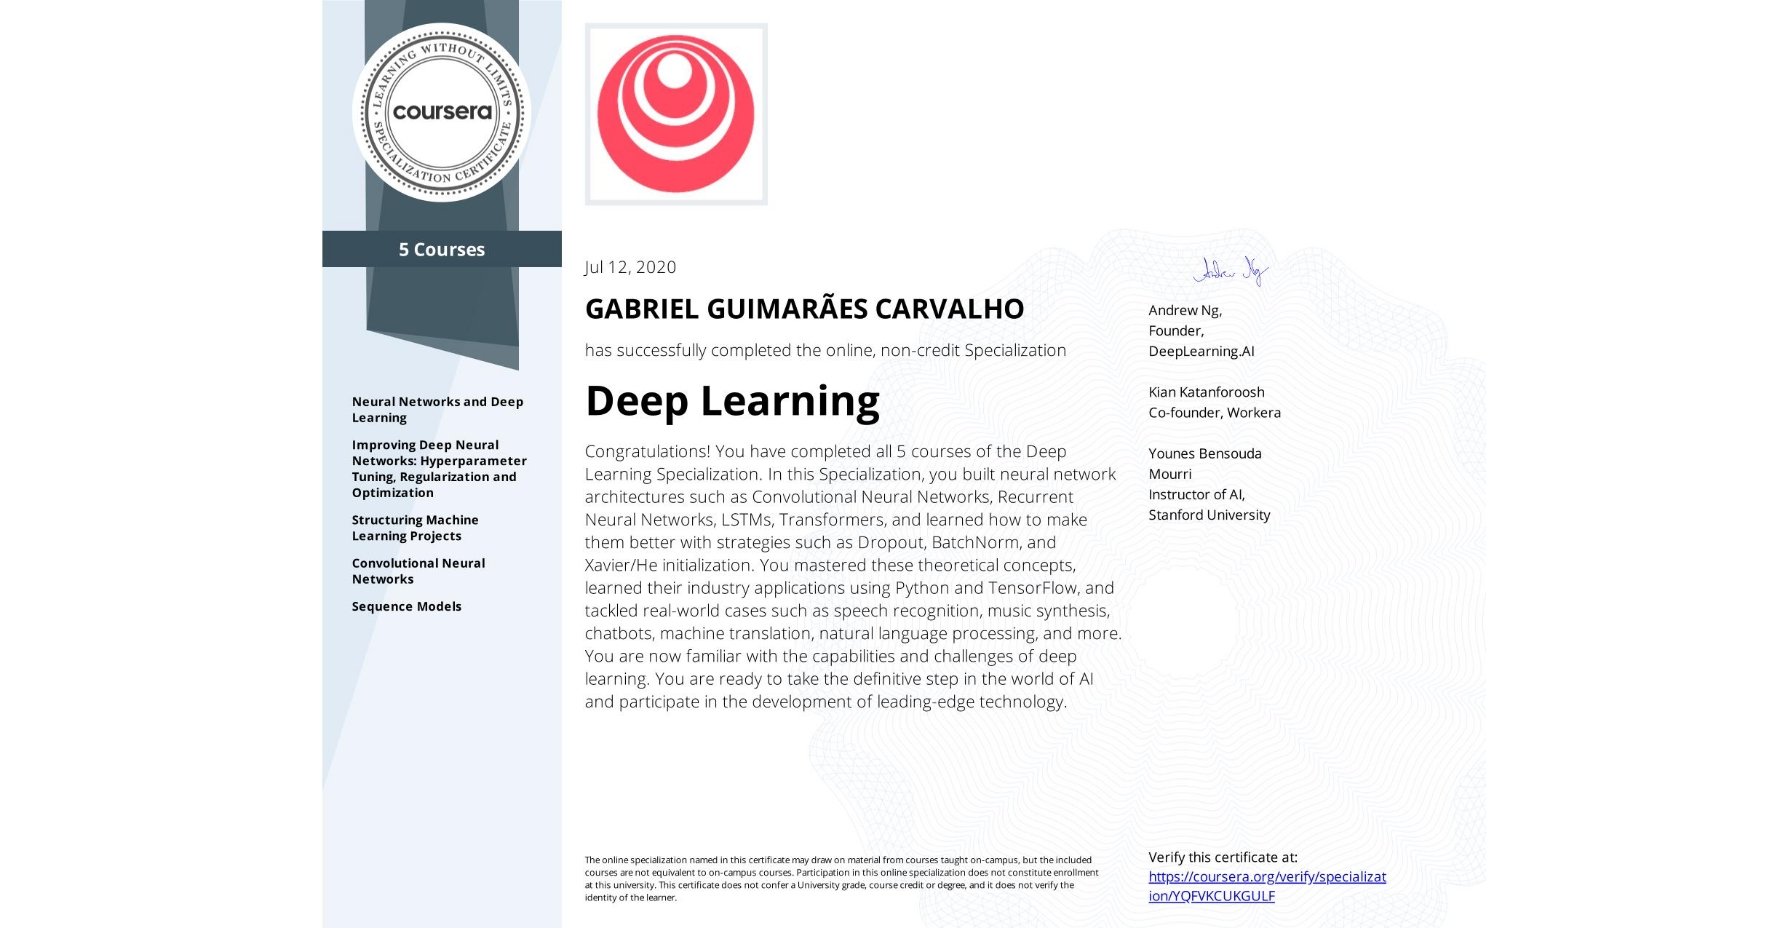 View certificate for GABRIEL GUIMARÃES CARVALHO, Deep Learning, offered through Coursera. Congratulations! You have completed all 5 courses of the Deep Learning Specialization.  In this Specialization, you built neural network architectures such as Convolutional Neural Networks, Recurrent Neural Networks, LSTMs, Transformers, and learned how to make them better with strategies such as Dropout, BatchNorm, and Xavier/He initialization. You mastered these theoretical concepts, learned their industry applications using Python and TensorFlow, and tackled real-world cases such as speech recognition, music synthesis, chatbots, machine translation, natural language processing, and more.  You are now familiar with the capabilities and challenges of deep learning. You are ready to take the definitive step in the world of AI and participate in the development of leading-edge technology.